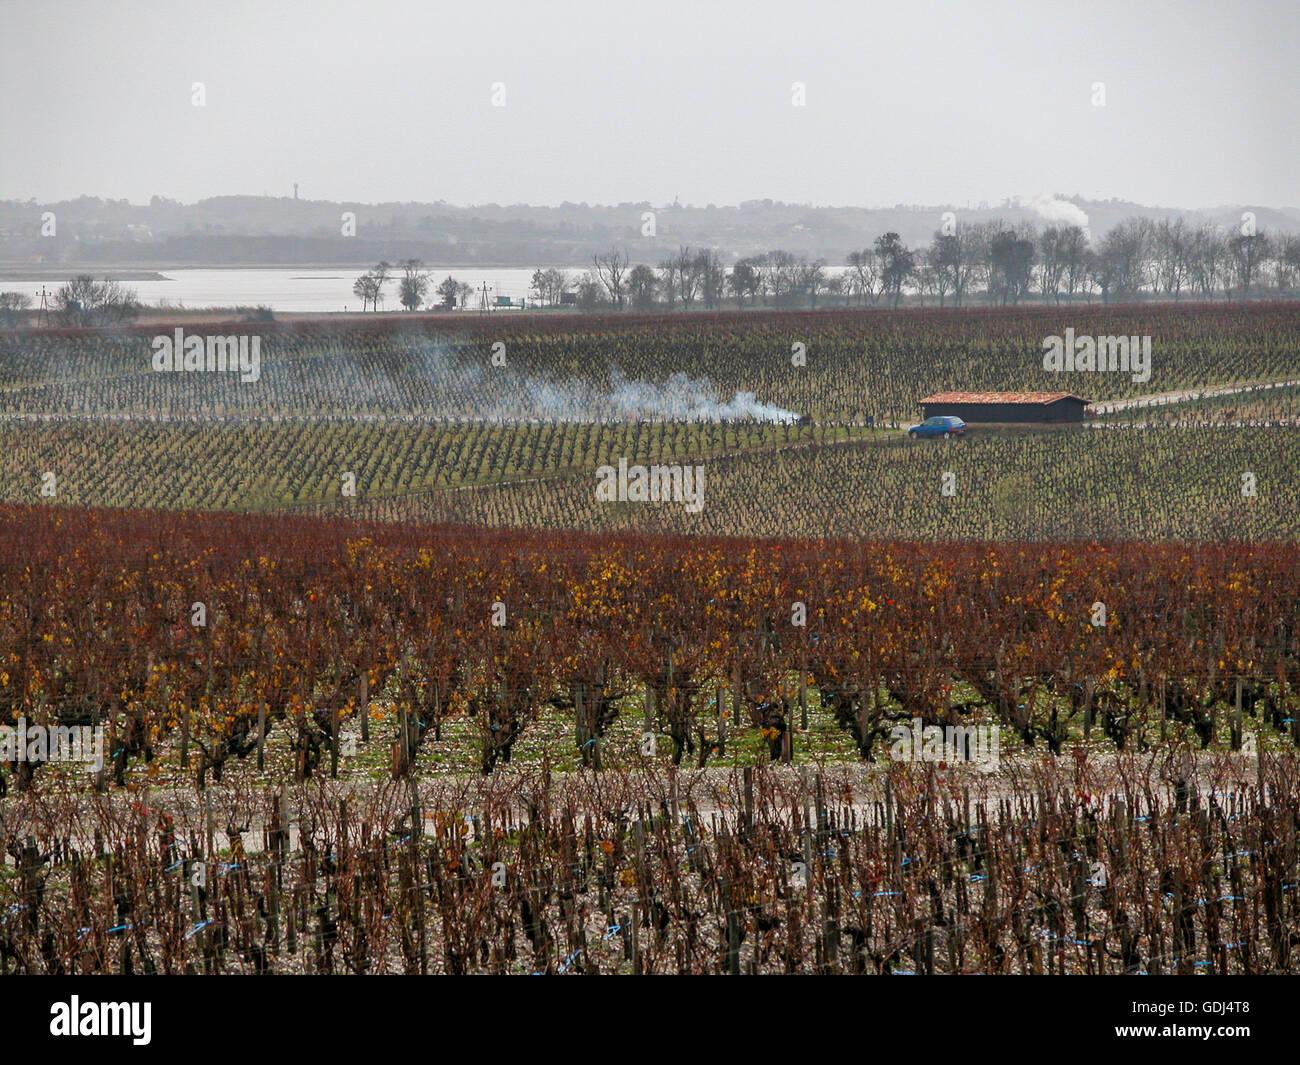 vineyards of Saint-Julien seen from Pauillac, Gironde, France Stock Photo